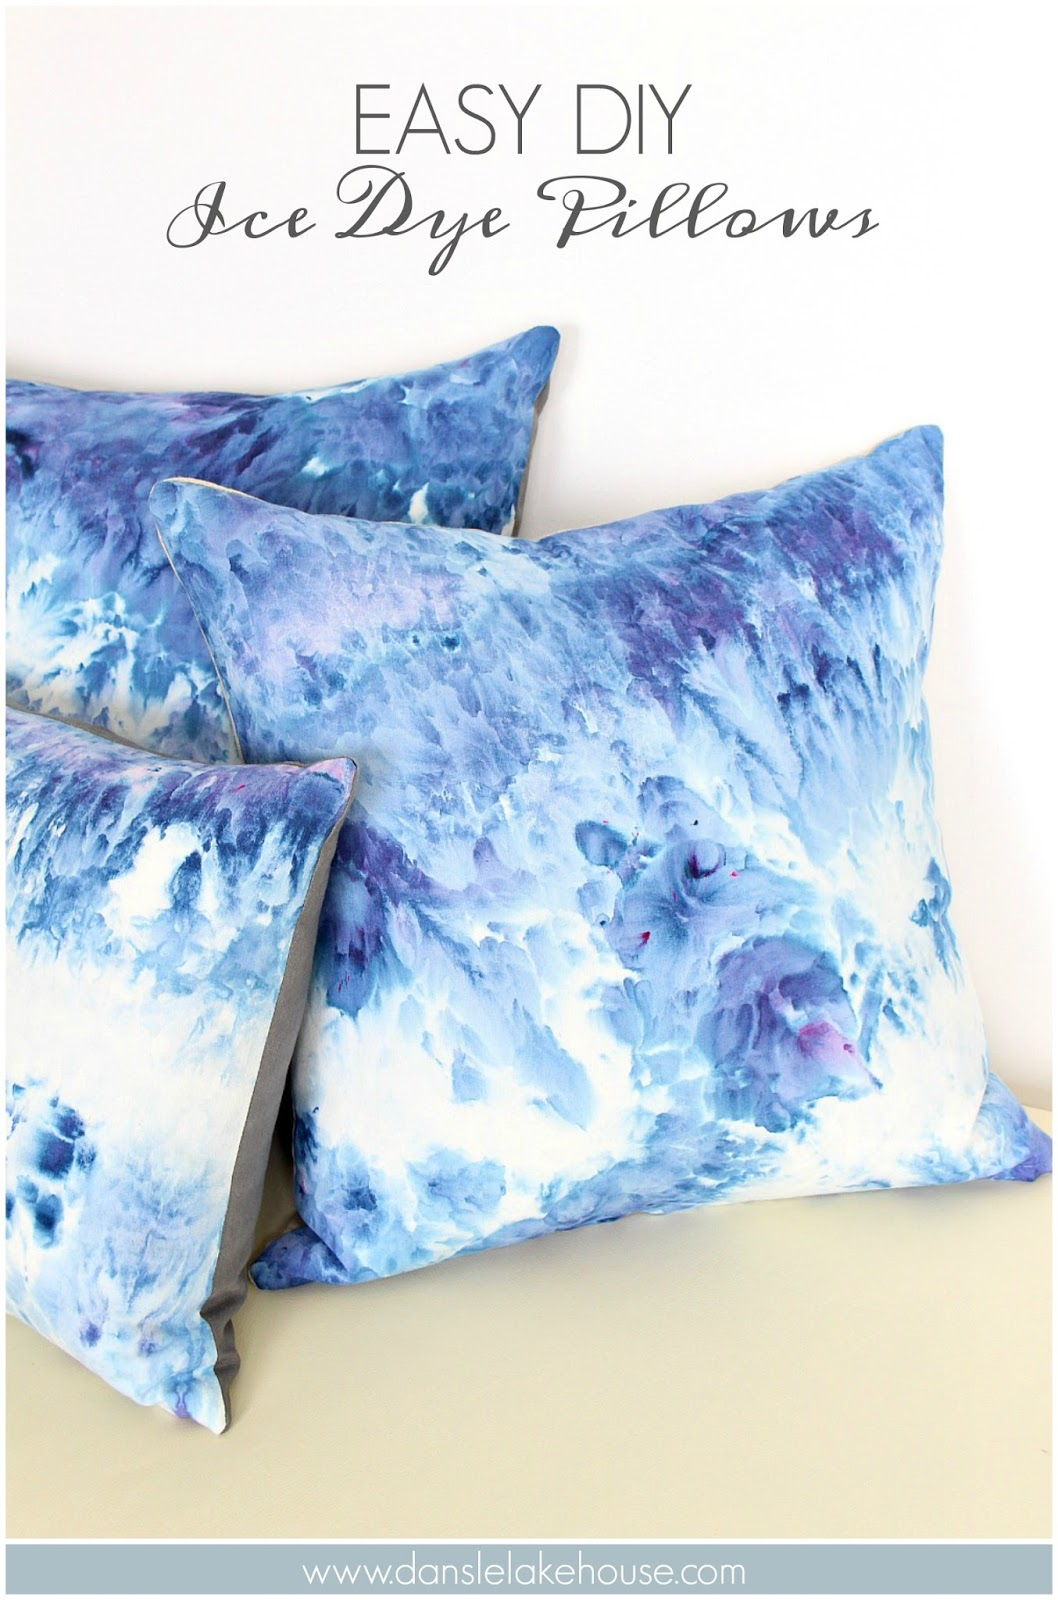 Easy Ice Dye Pillow Tutorial | @danslelakehouse